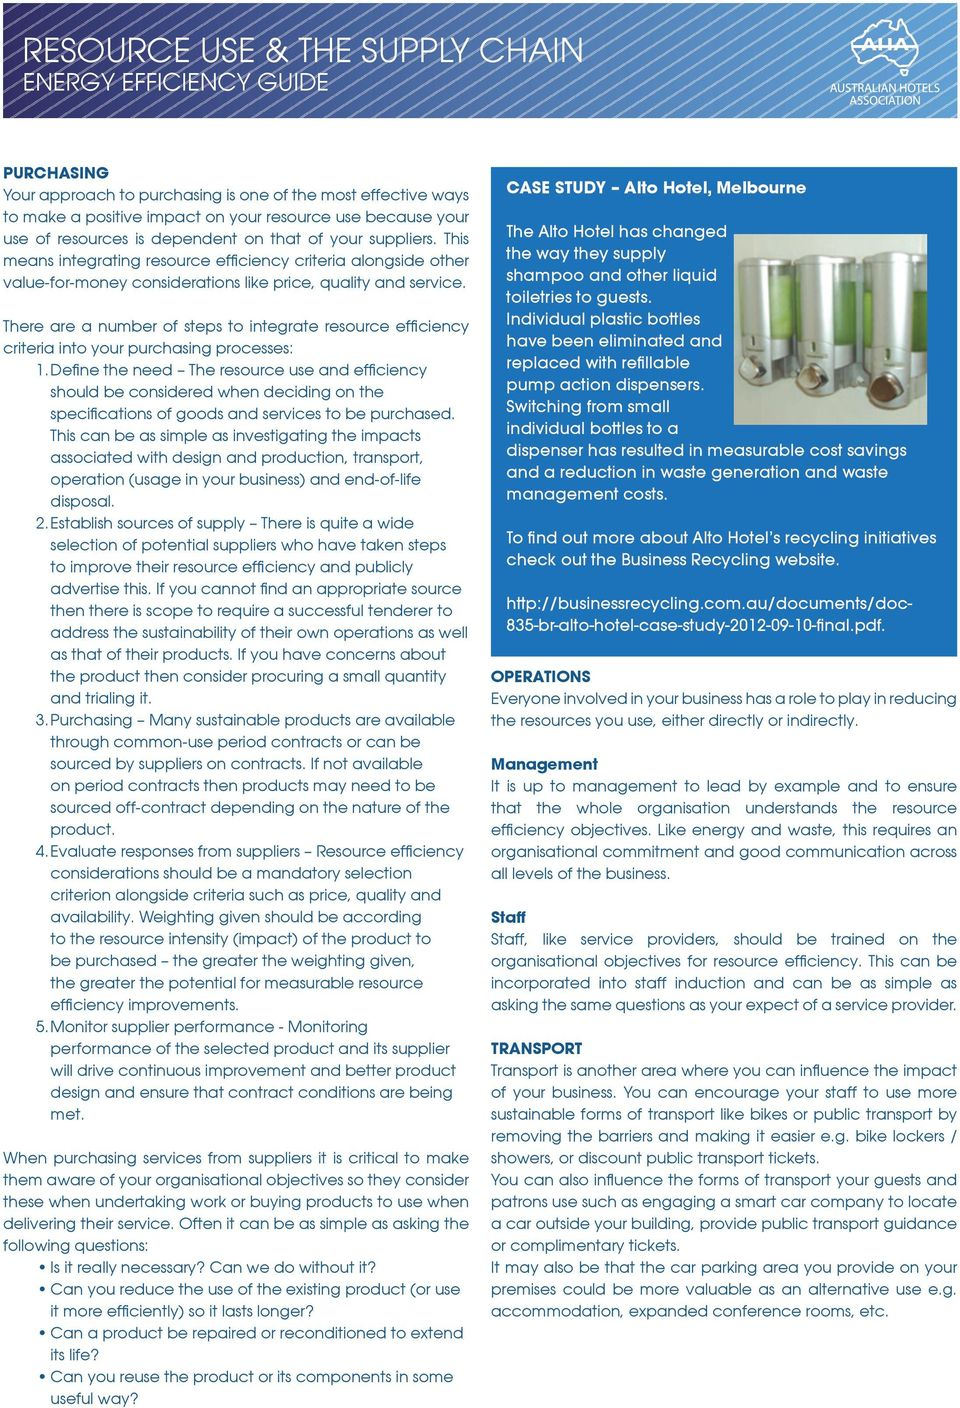 RESOURCE USE & THE SUPPLY CHAIN - PDF